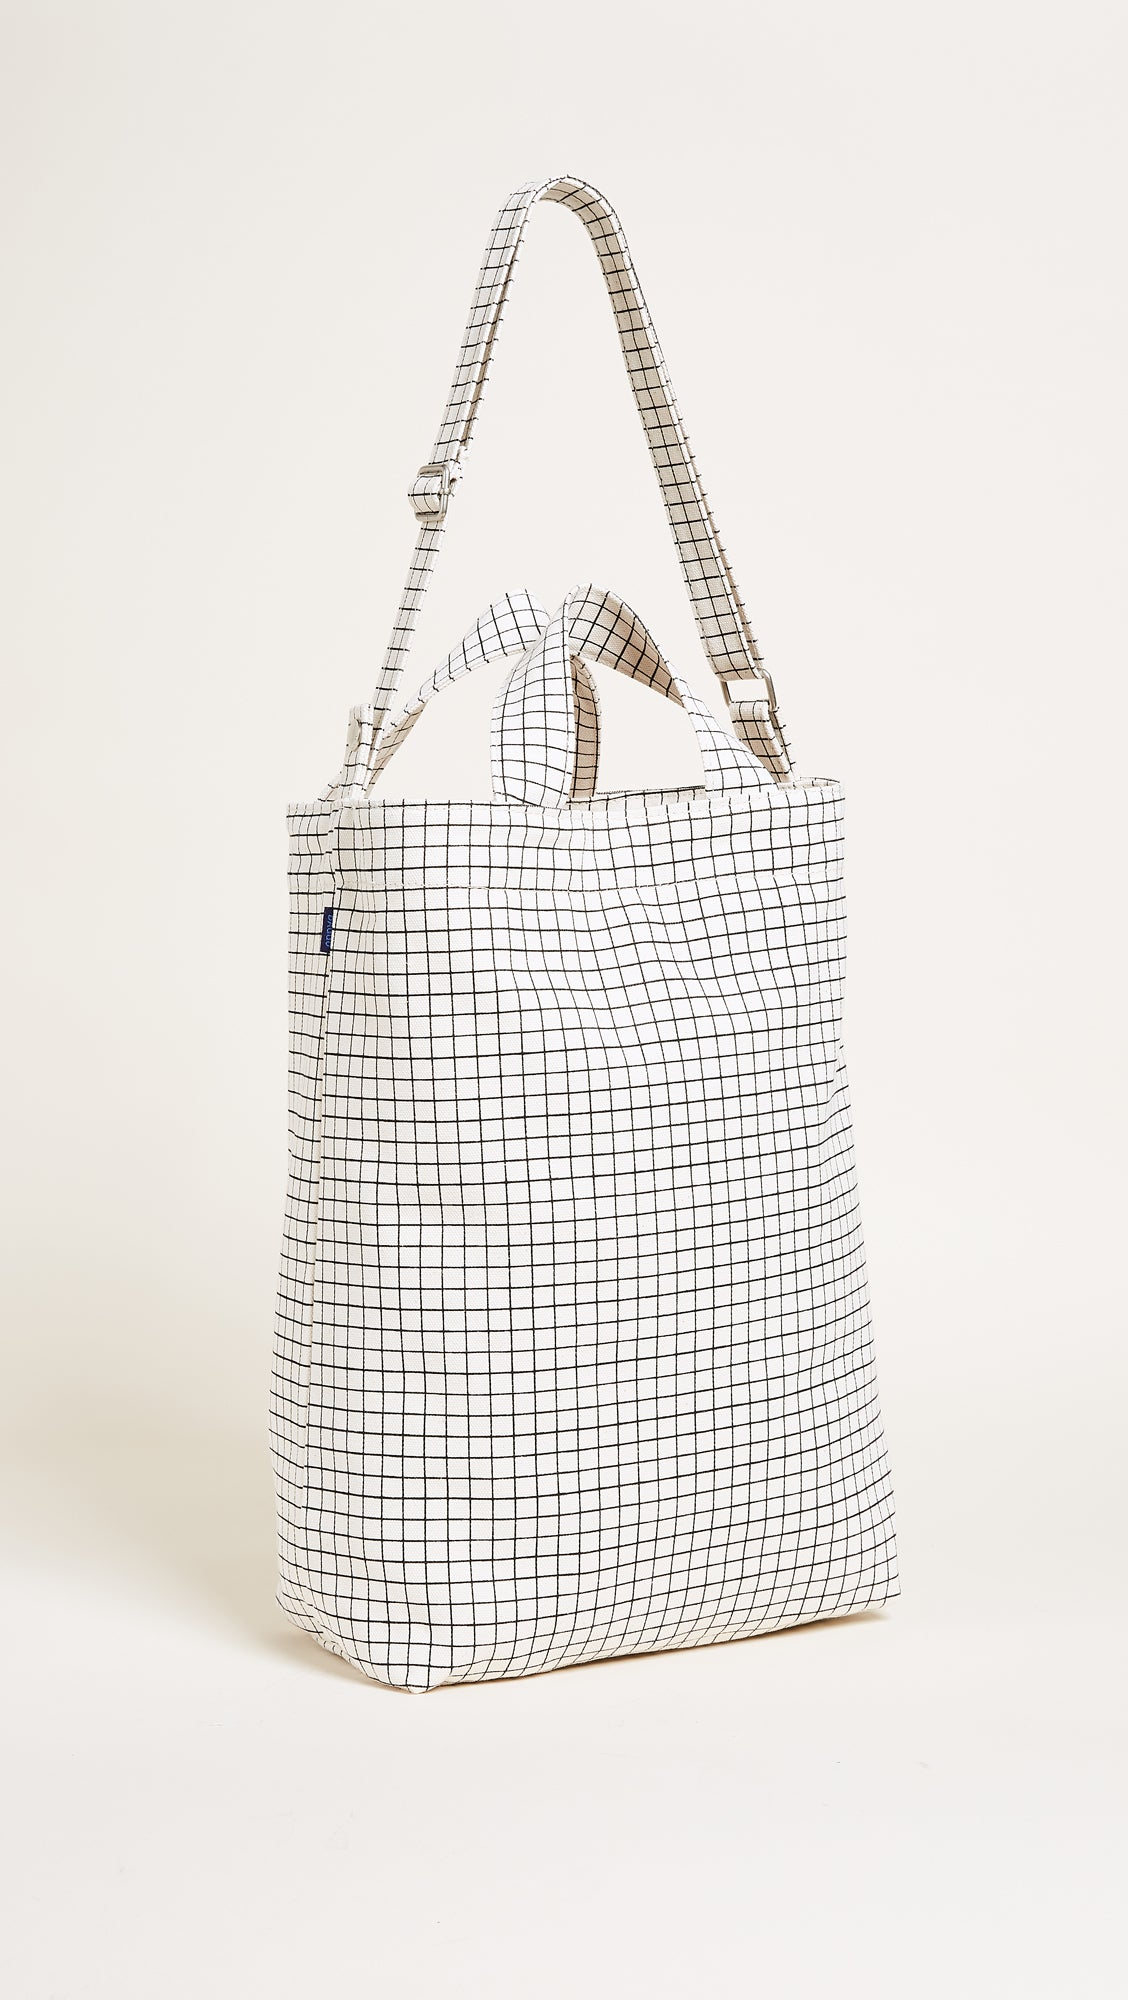 Duck Bag - Grid